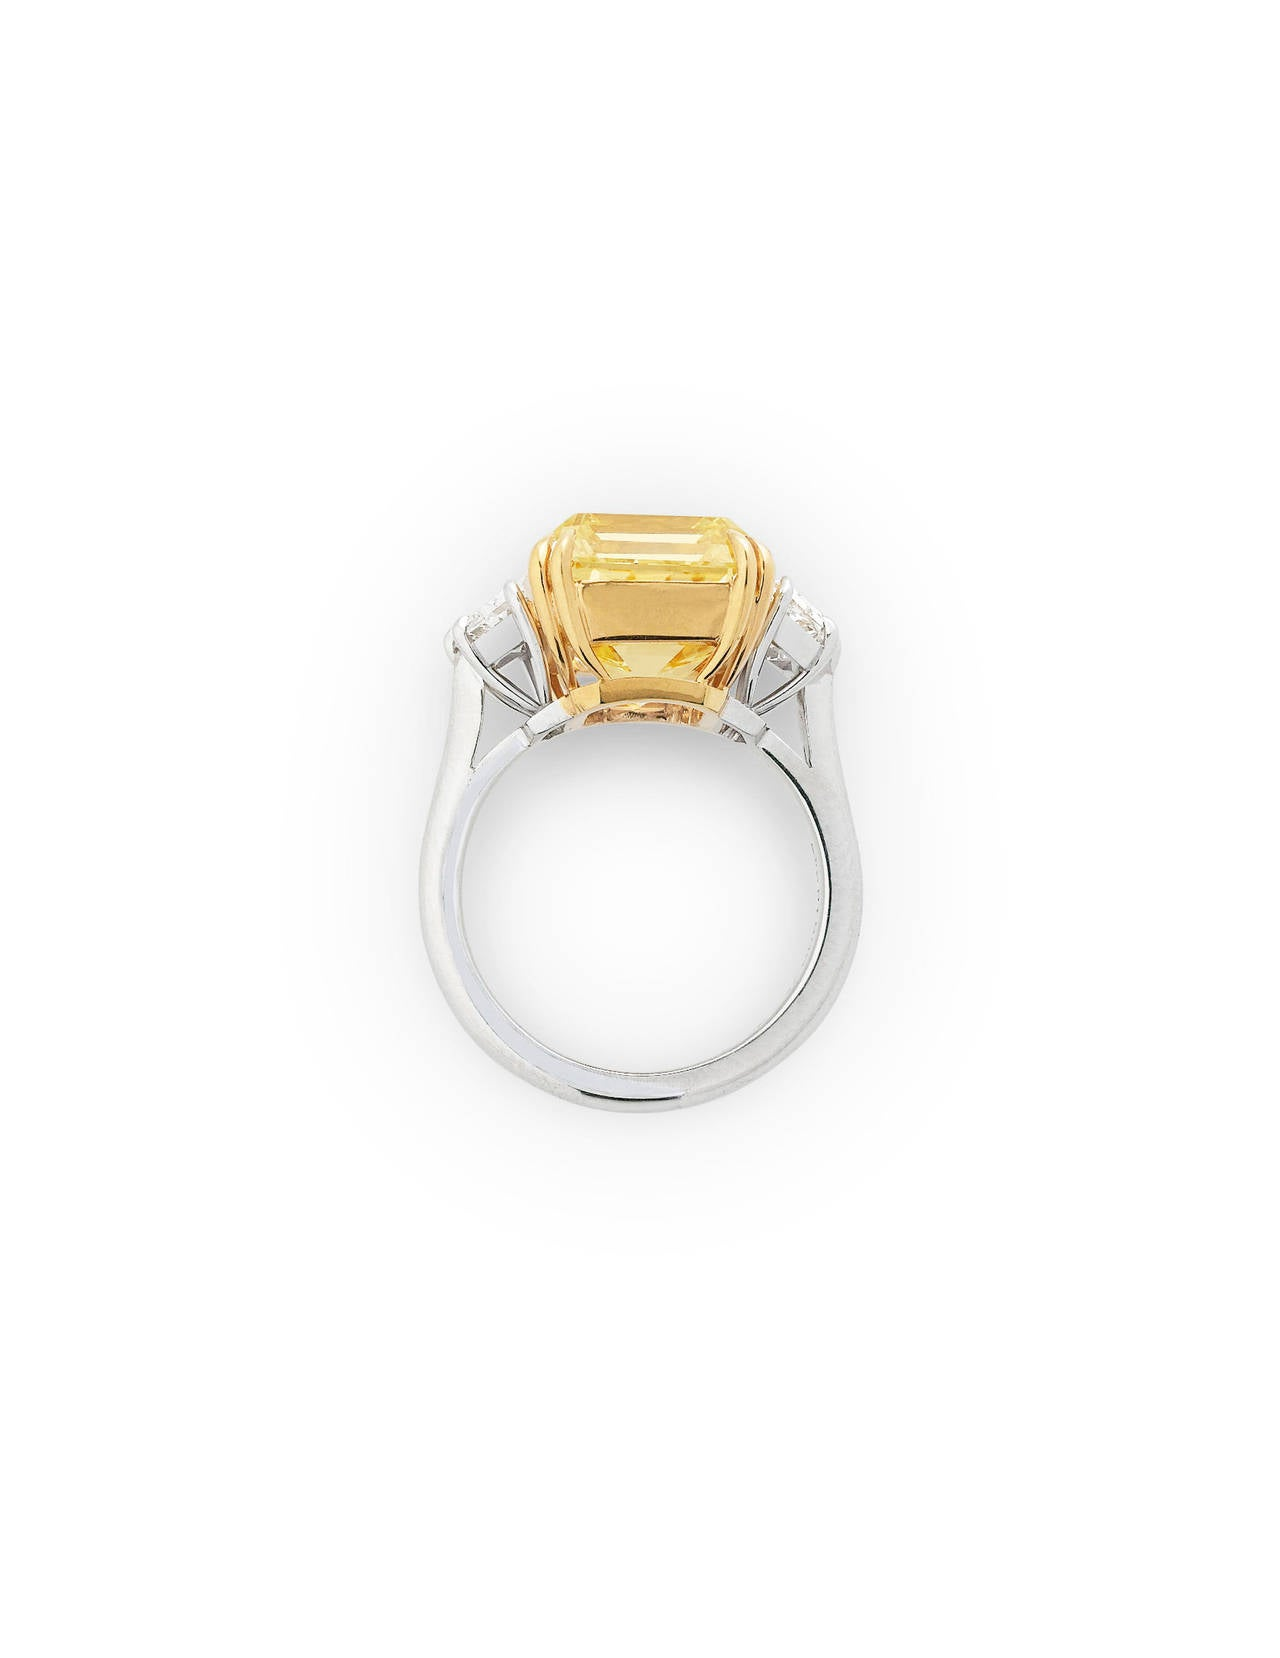 Fancy Intense Yellow 10 75 Carats Diamond Ring For Sale at 1stdibs